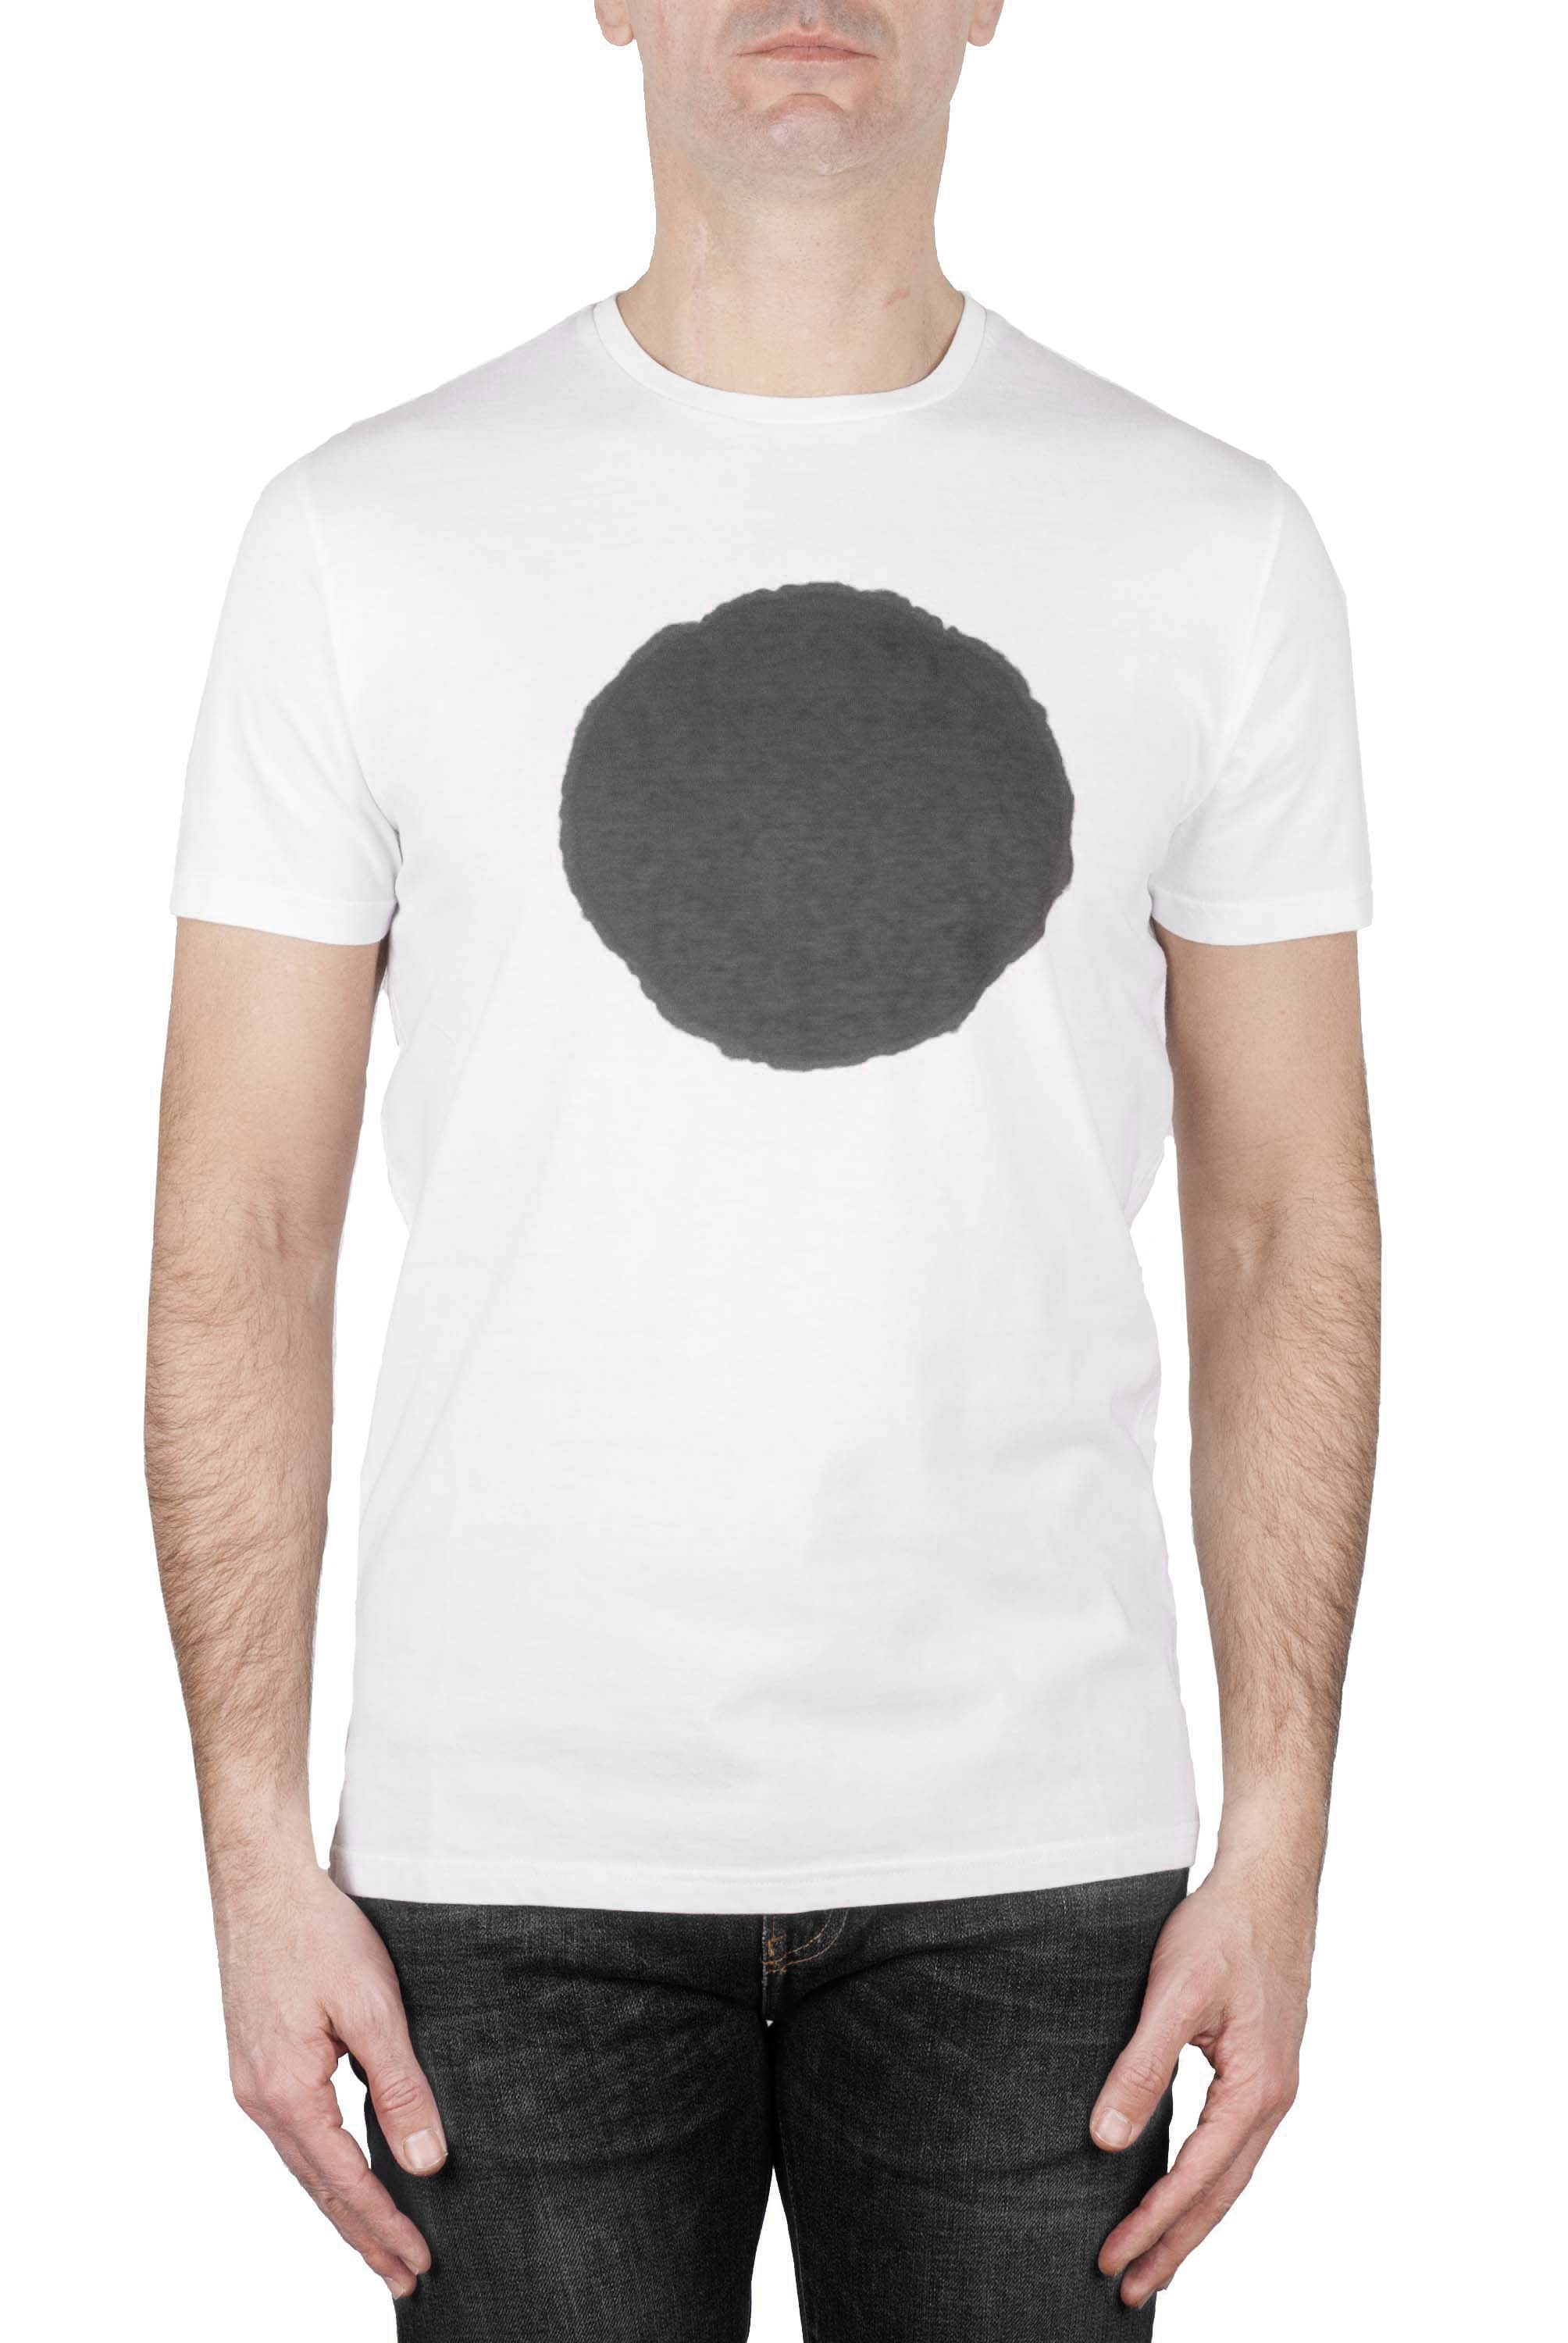 SBU 02845_2020SS Classic short sleeve cotton round neck t-shirt grey and white printed graphic 01